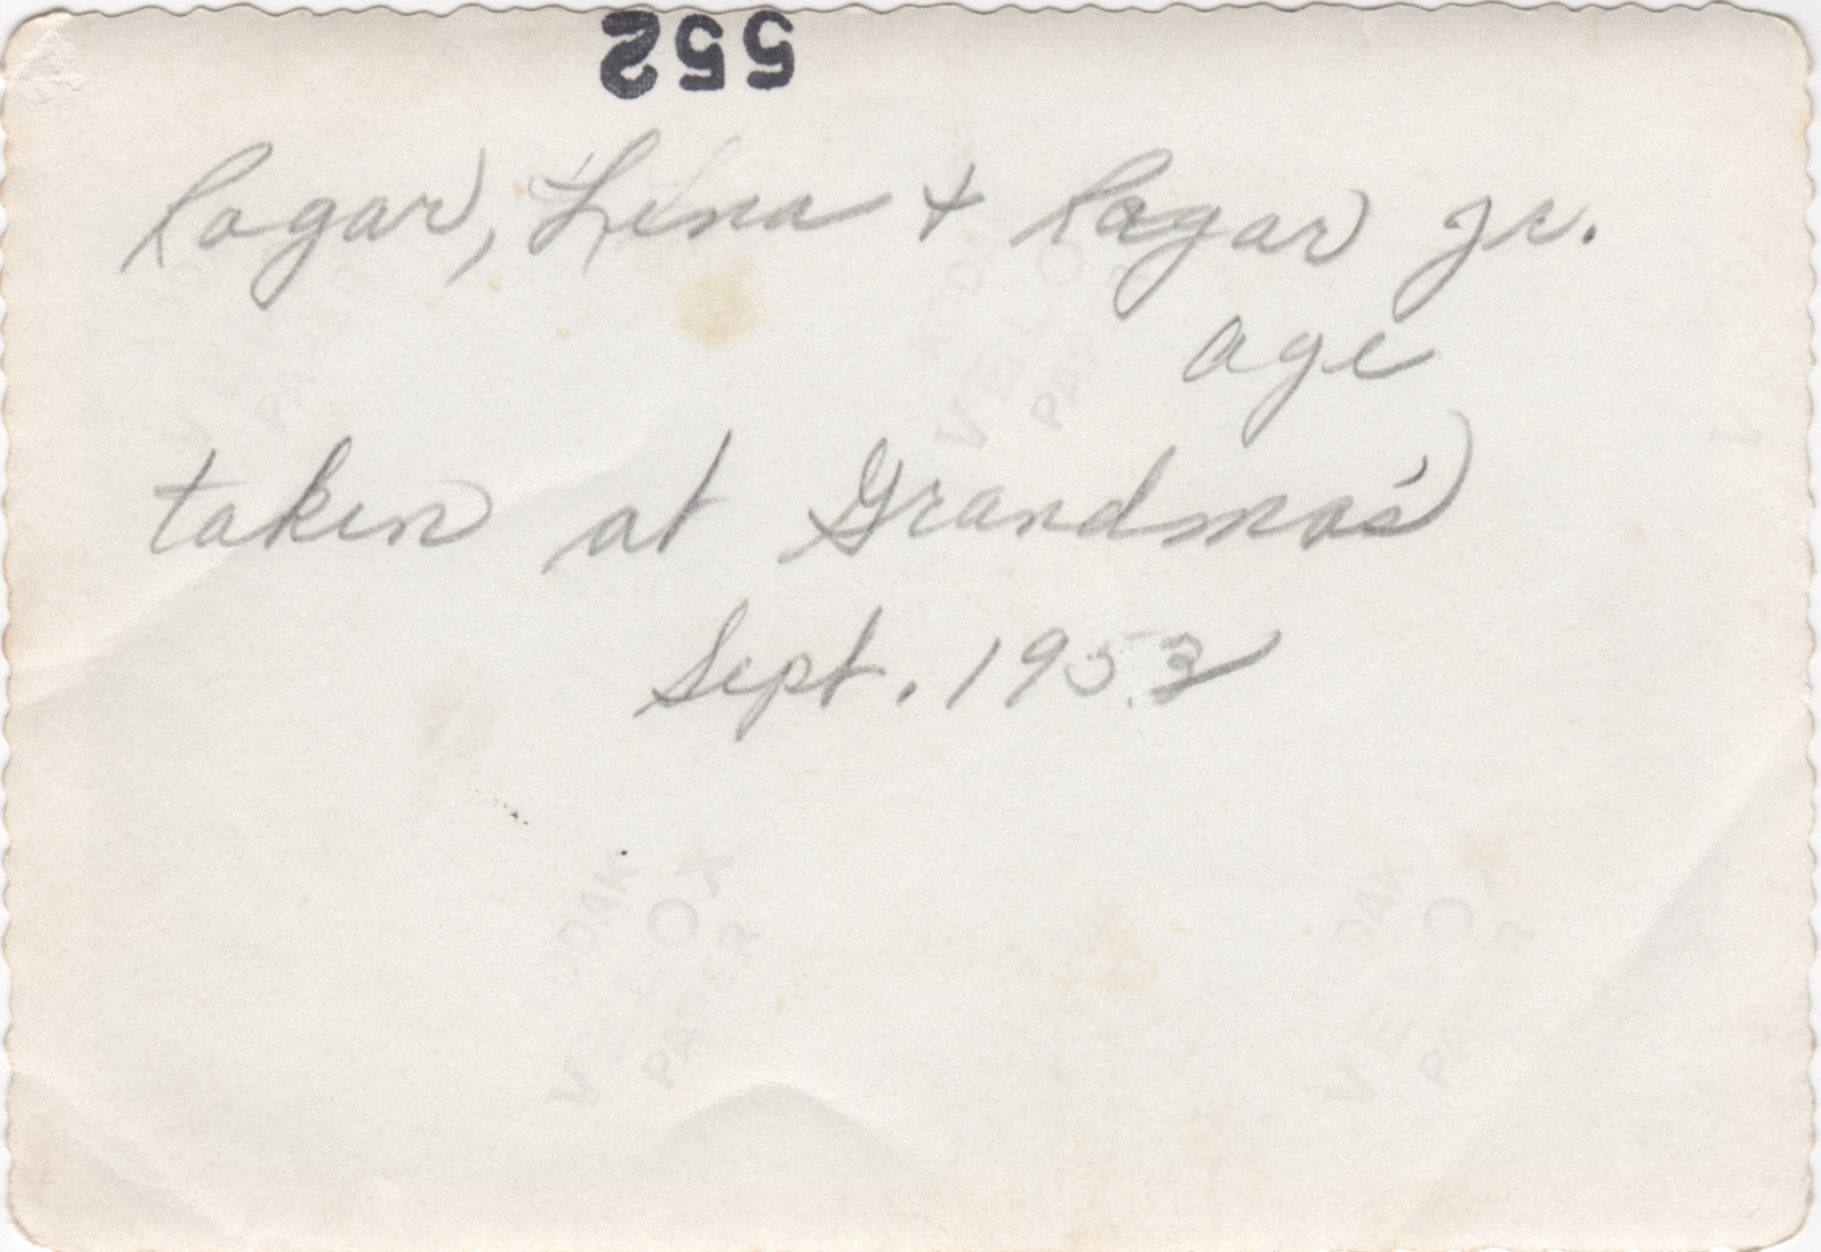 Ragar, Lina and Ragar Jr. - 1953 (back)